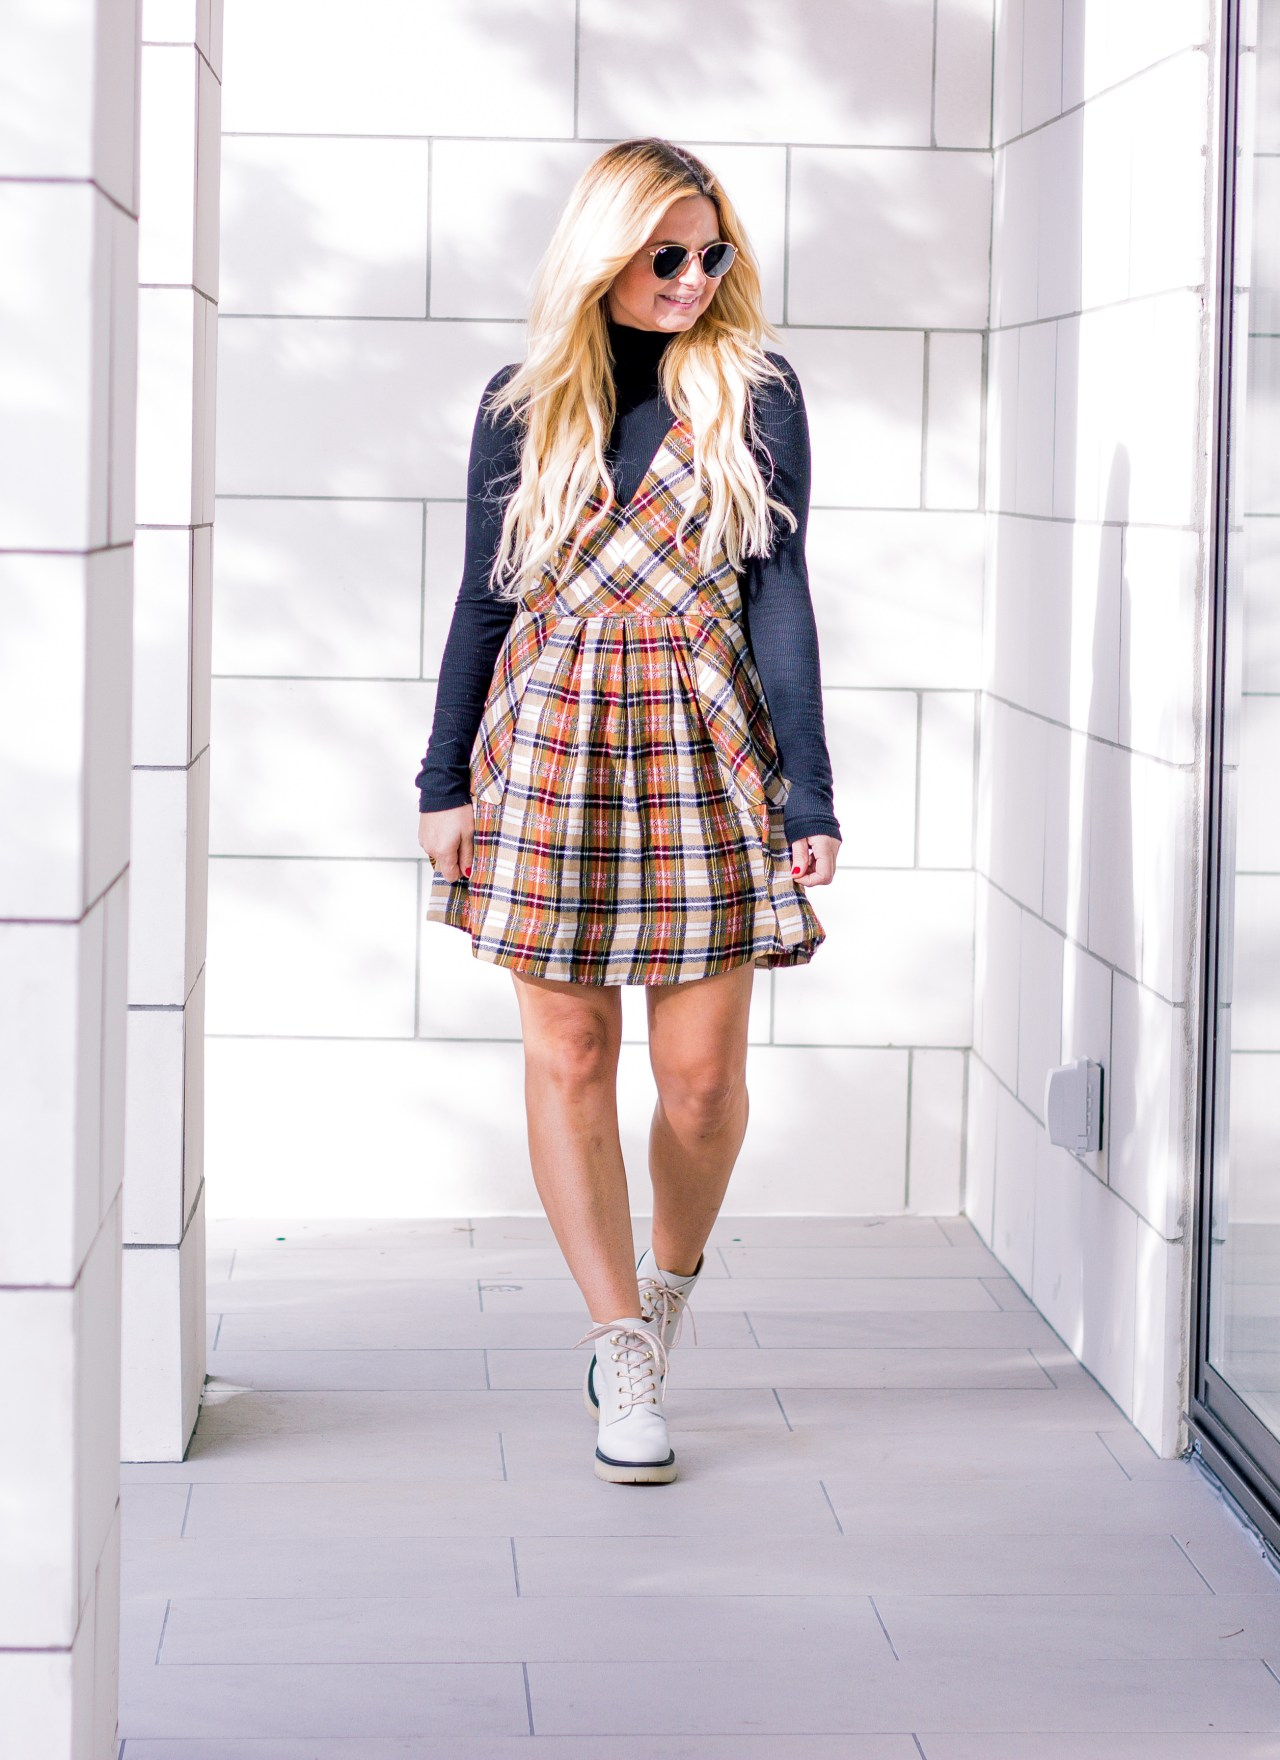 The Plaid Mini Dress You Need this Fall